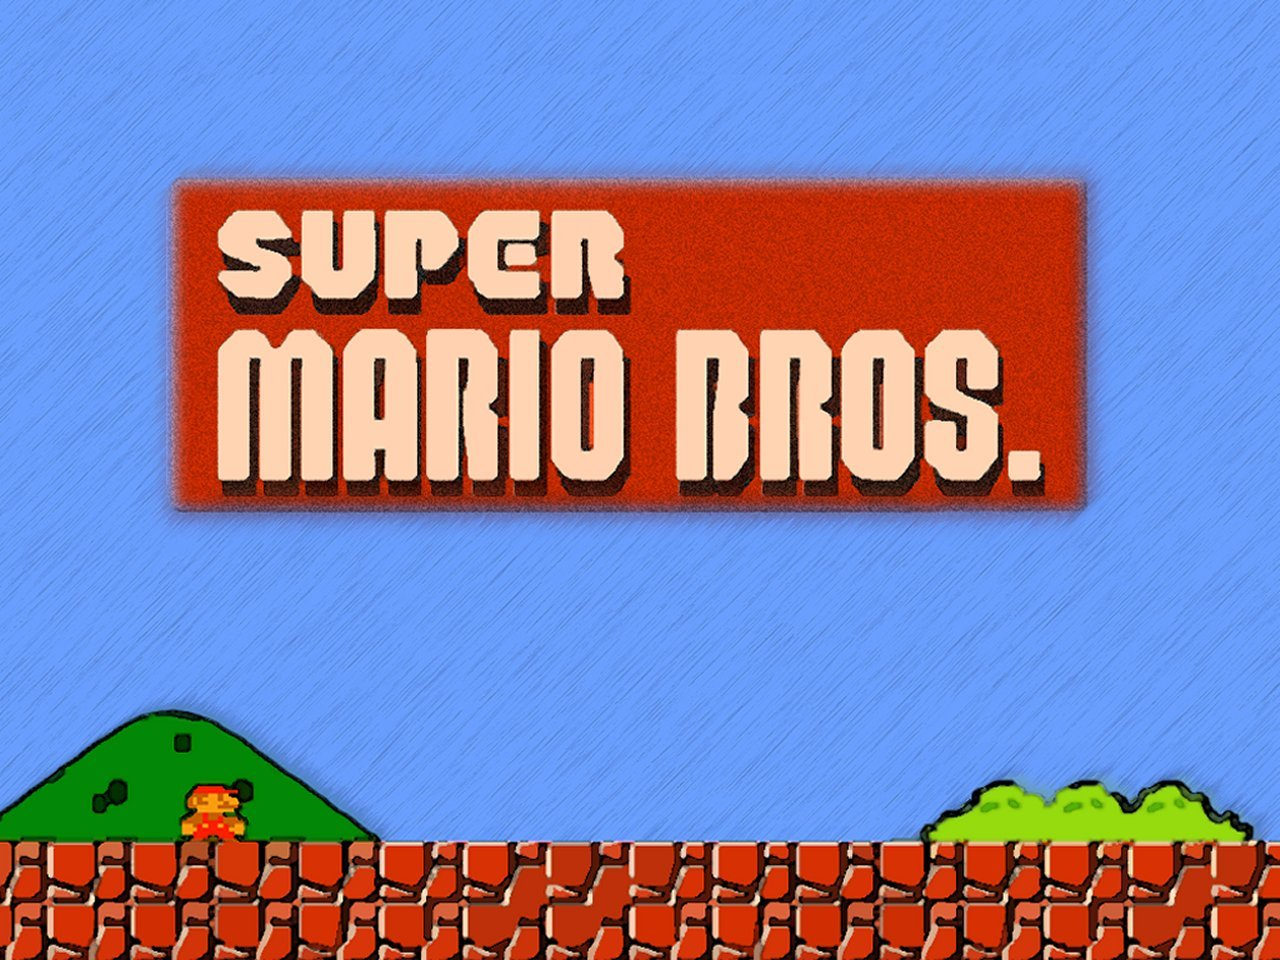 Video: Scaredy cat jumps every time Super Mario Bros. sound effects played